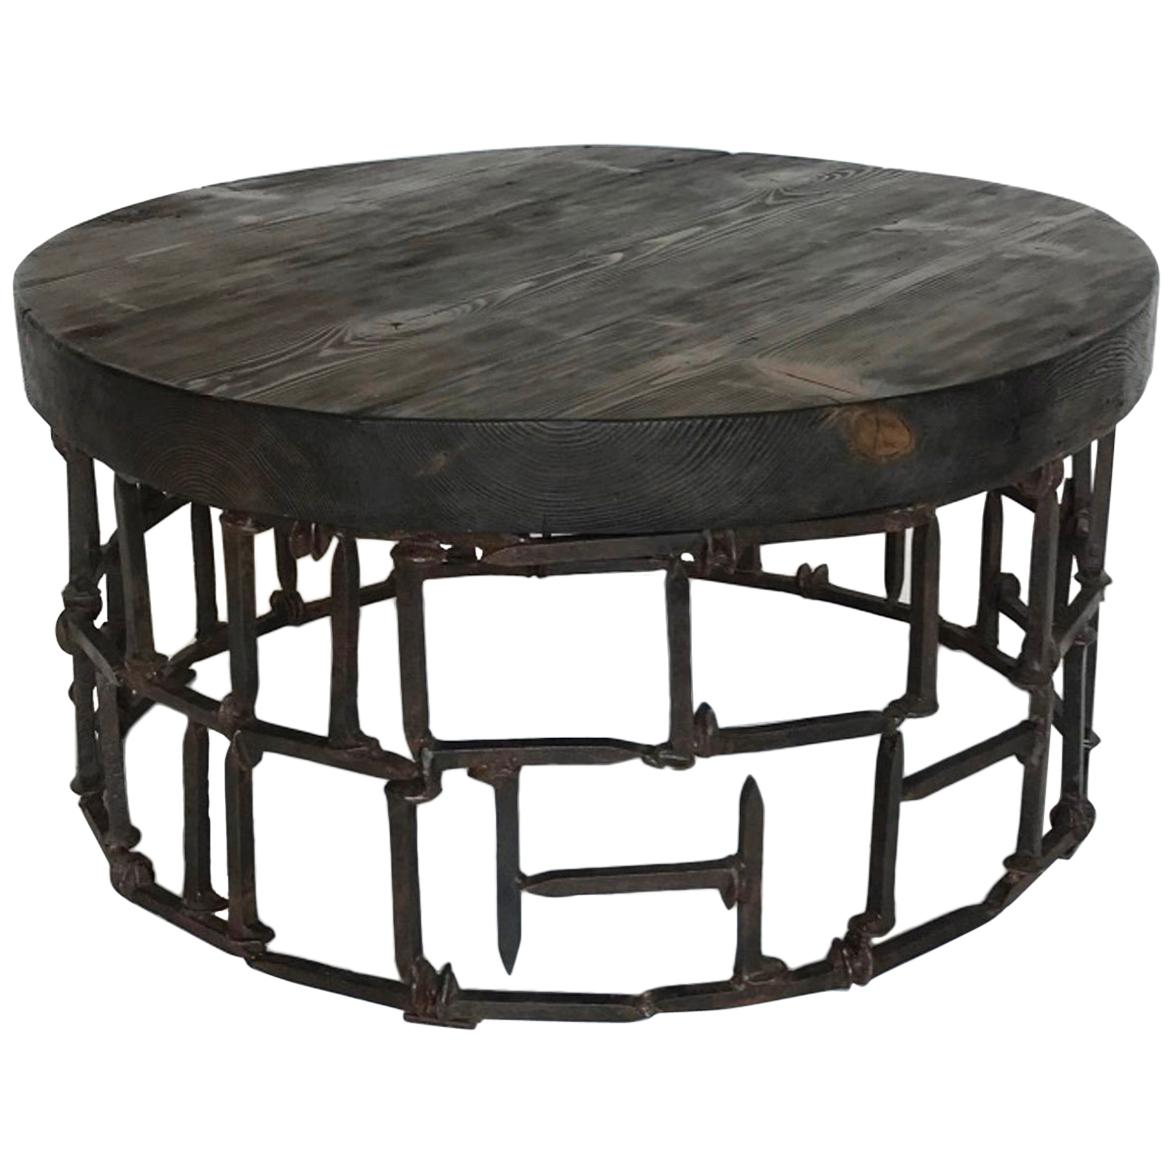 Ordinaire Round Vintage Railroad Spike Coffee Table For Sale